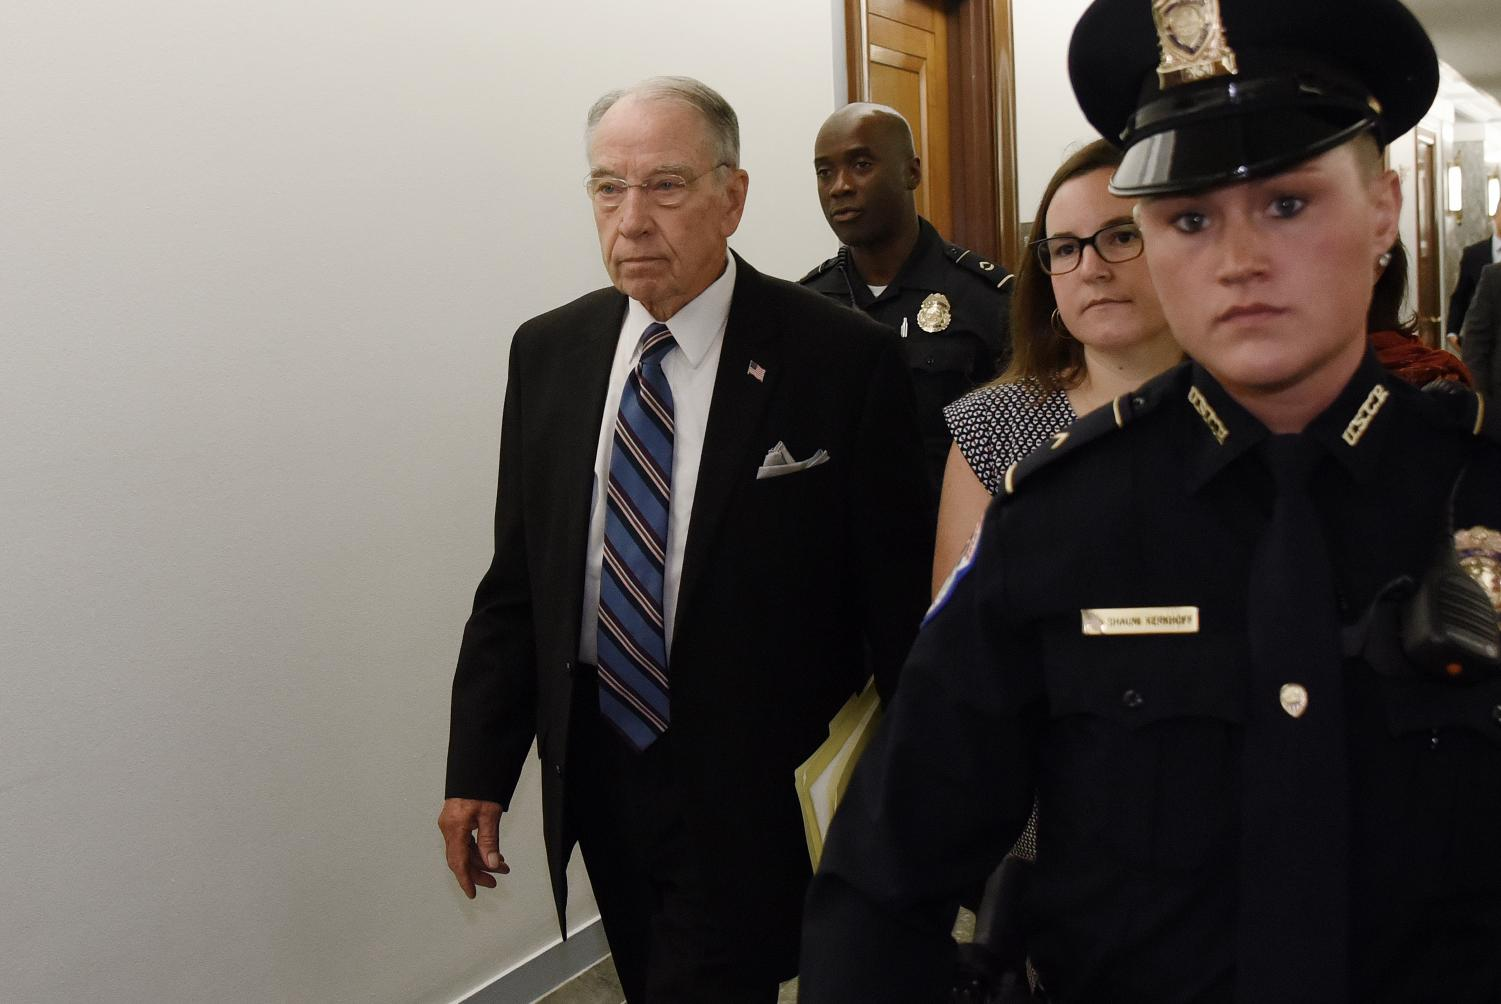 Senate Judiciary Committee Chairman Chuck Grassley arrives at the committee's hearing wihere Brett Kavanaugh and Christine Blasey Ford will testify on Capitol Hill in Washington, D.C., on Sept. 27, 2018. (Olivier Douliery/Abaca Press/TNS)